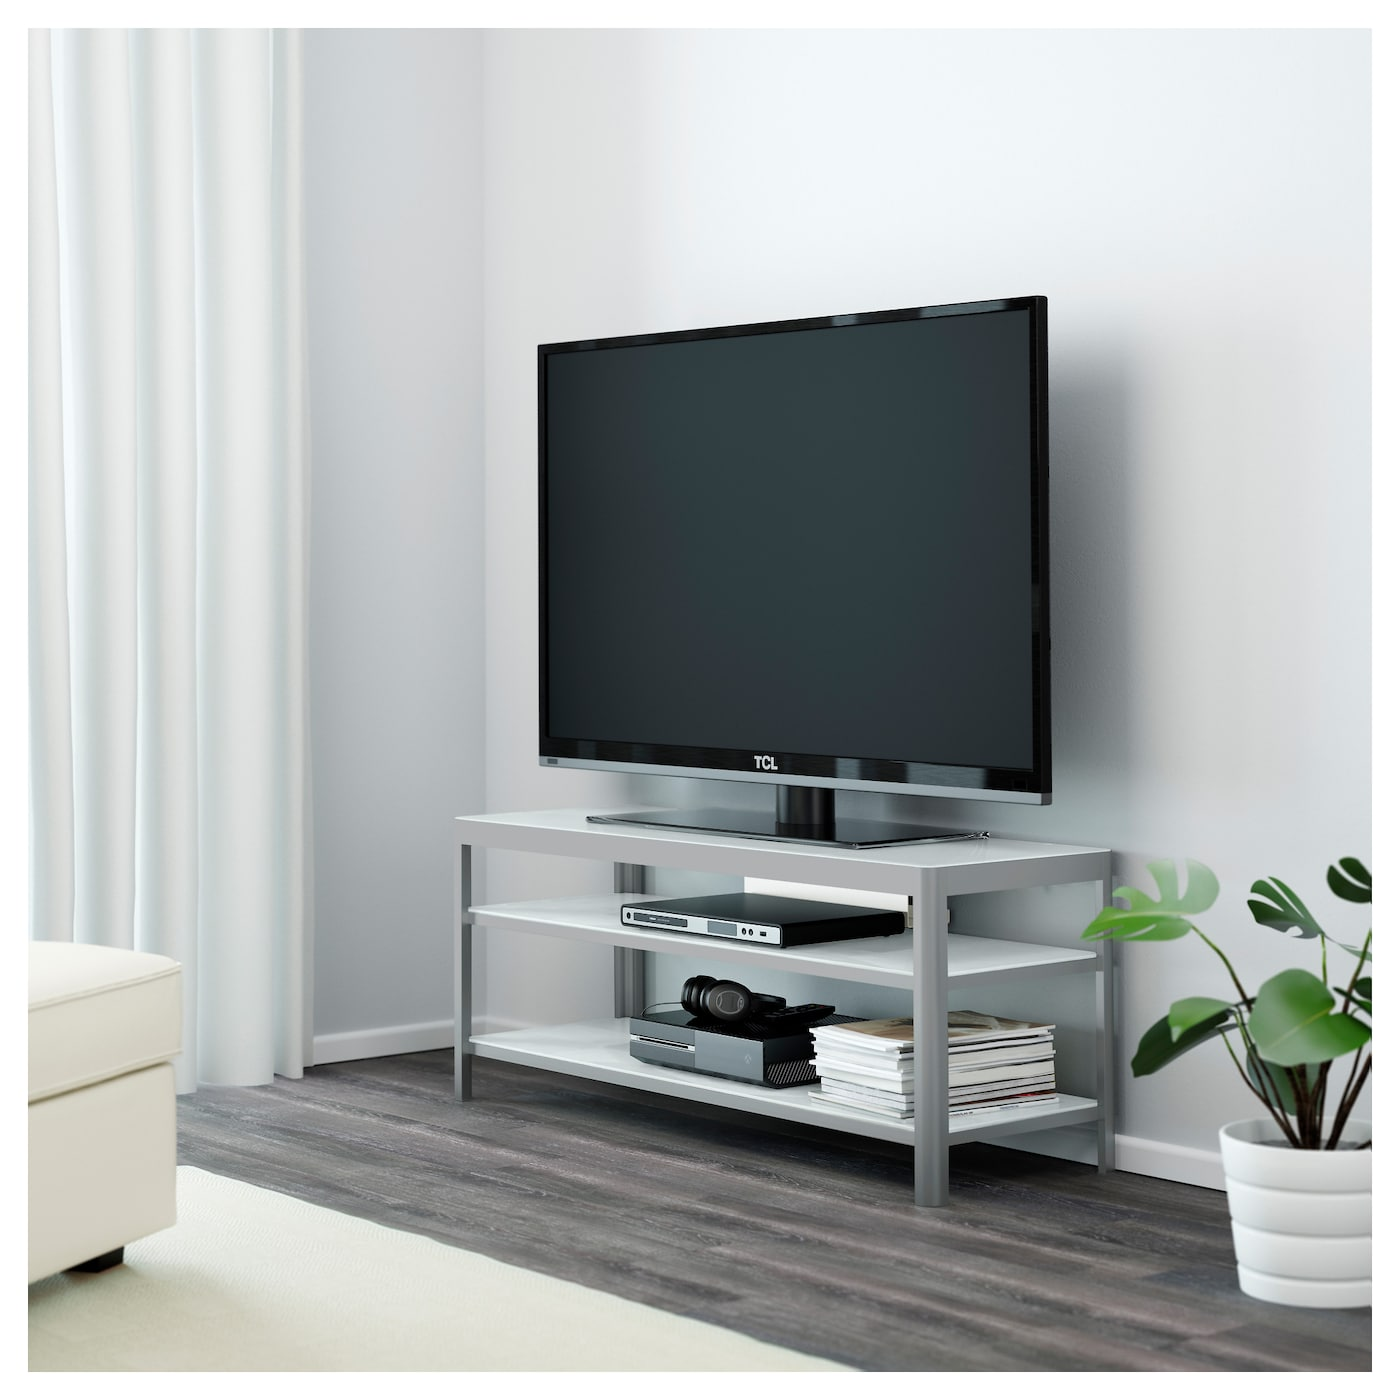 gettorp banc tv blanc aluminium 120 x 40 x 49 cm ikea. Black Bedroom Furniture Sets. Home Design Ideas